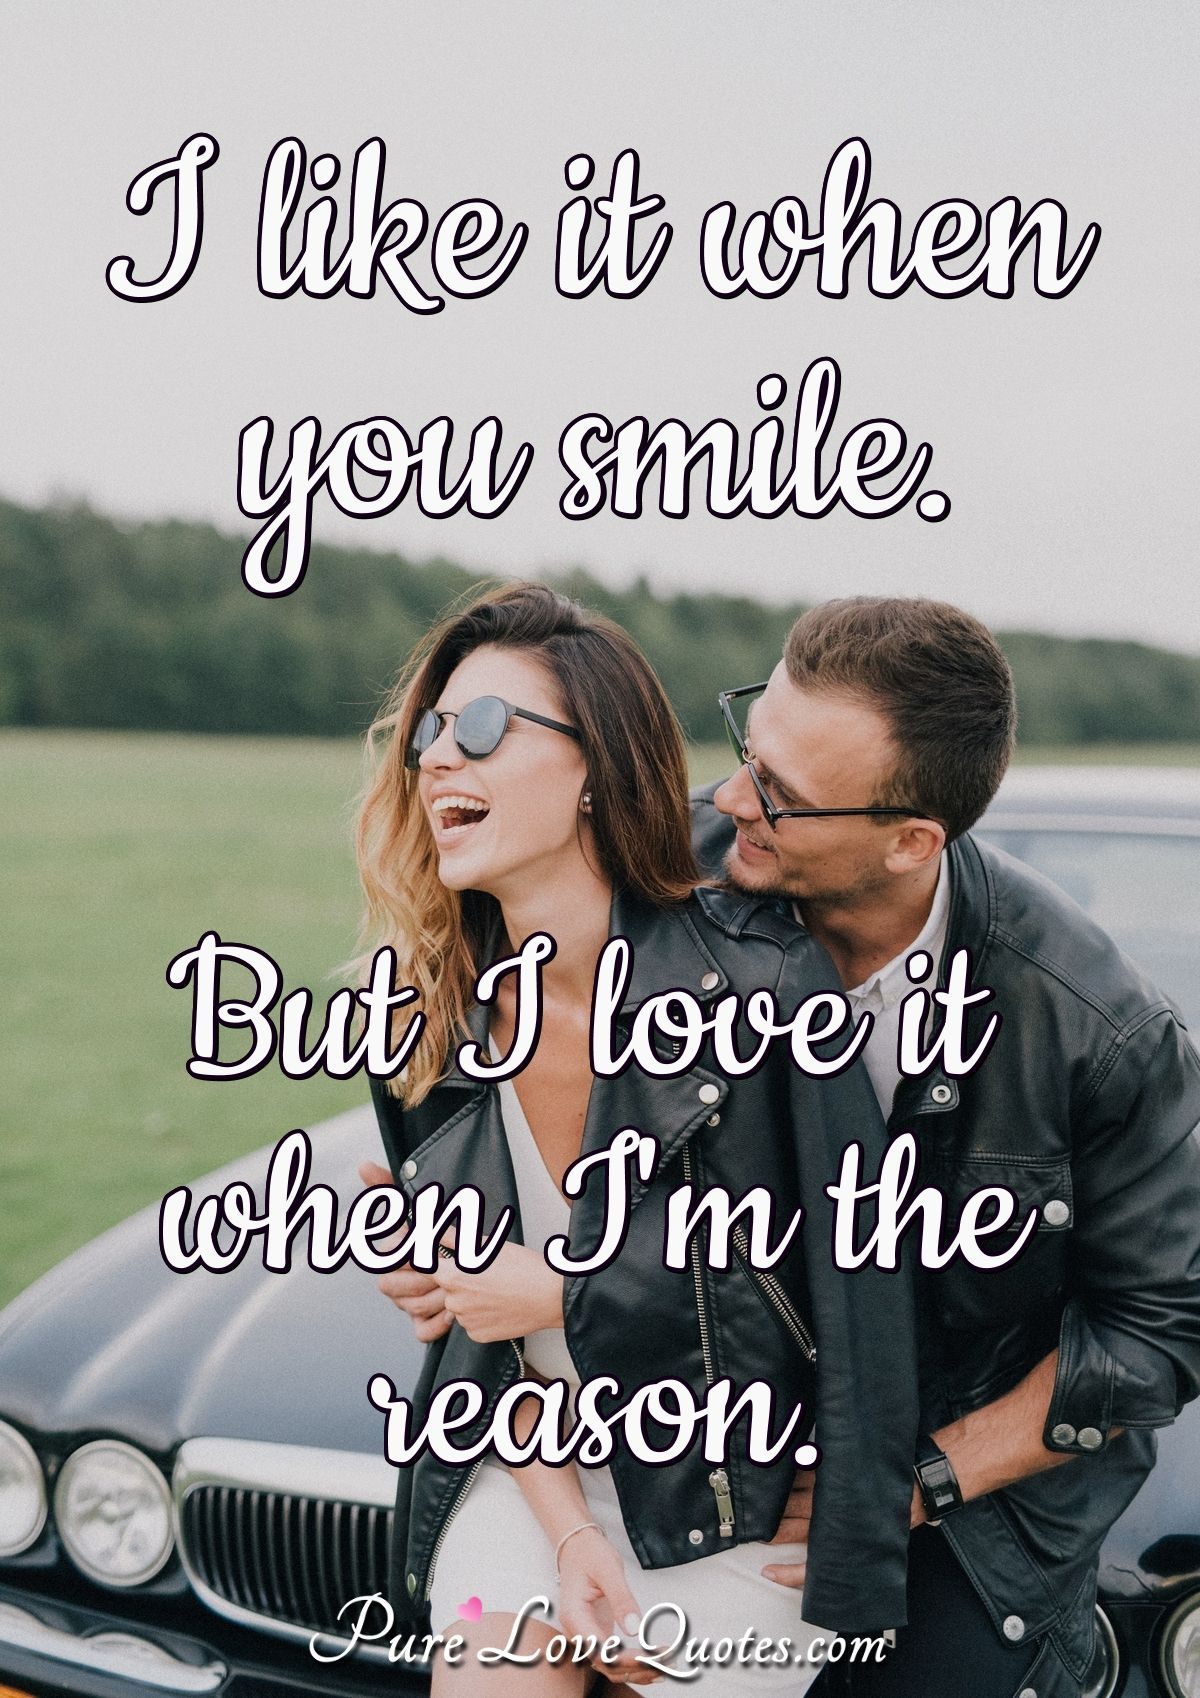 I like it when you smile. But I love it when I'm the reason. - Anonymous